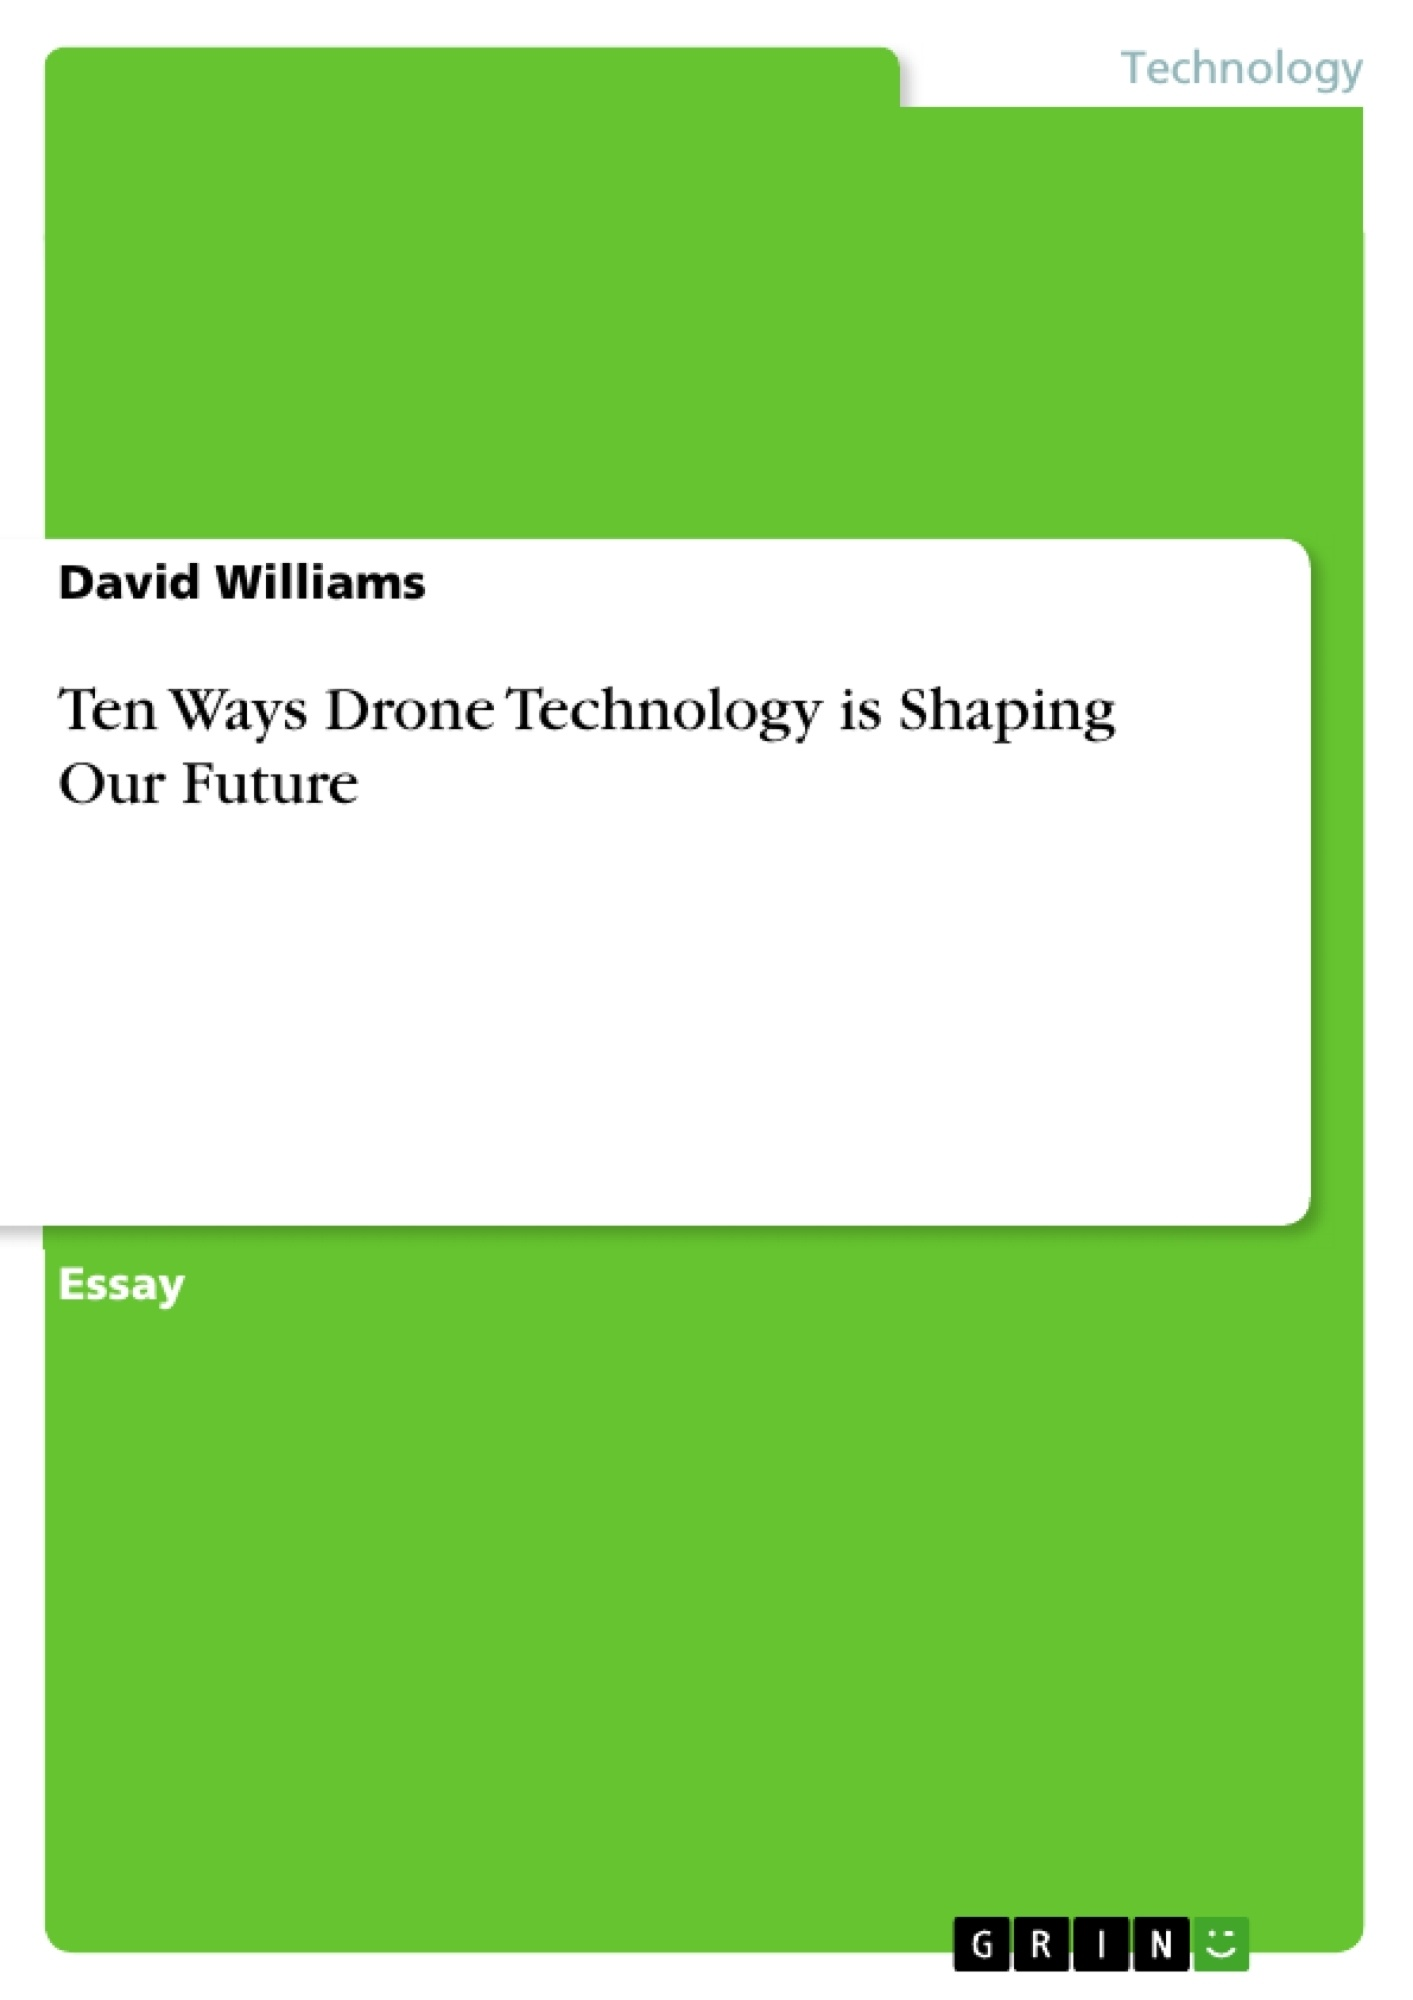 future technology essay ten ways drone technology is shaping our  ten ways drone technology is shaping our future publish your ten ways drone technology is shaping